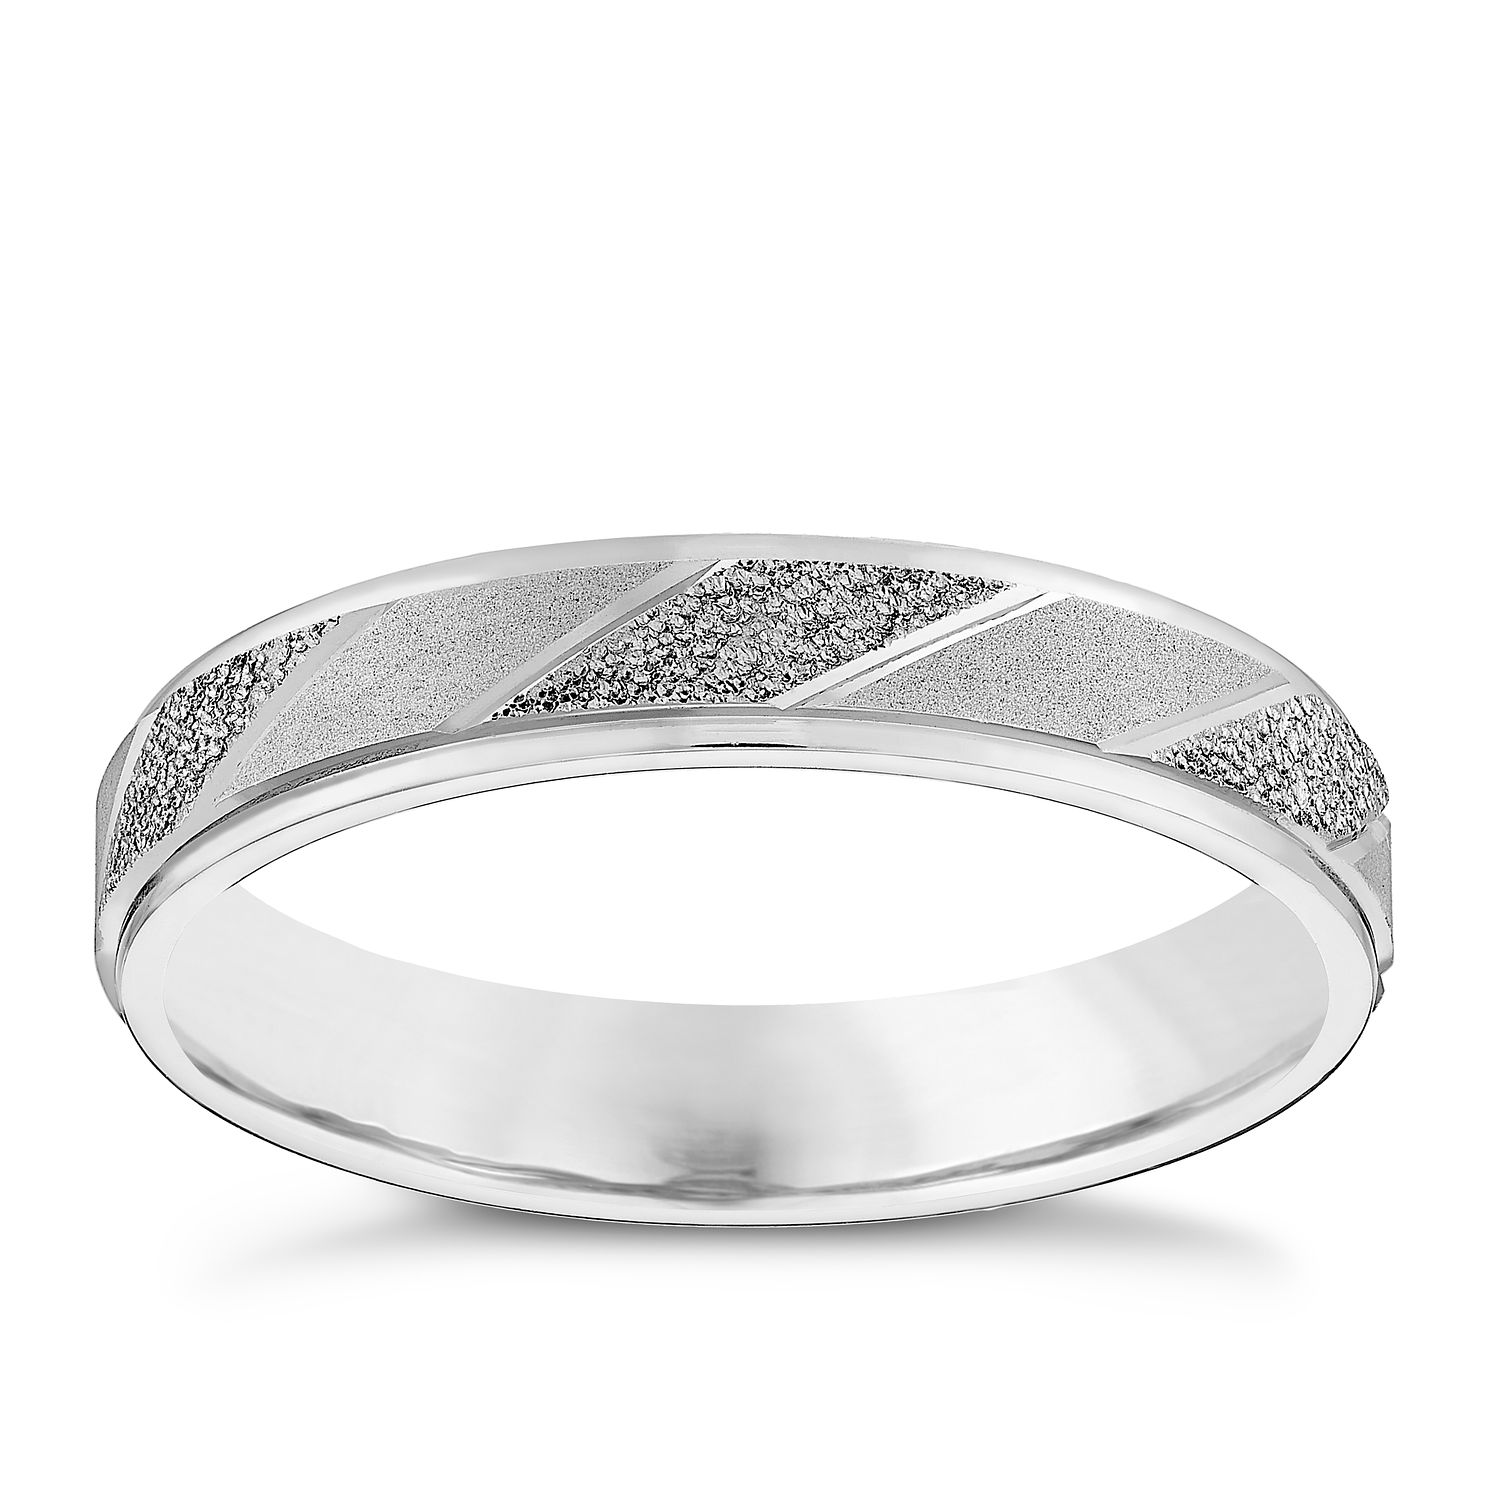 Ladies' 9ct White Gold Diagonal Patterned Band - Product number 4451066